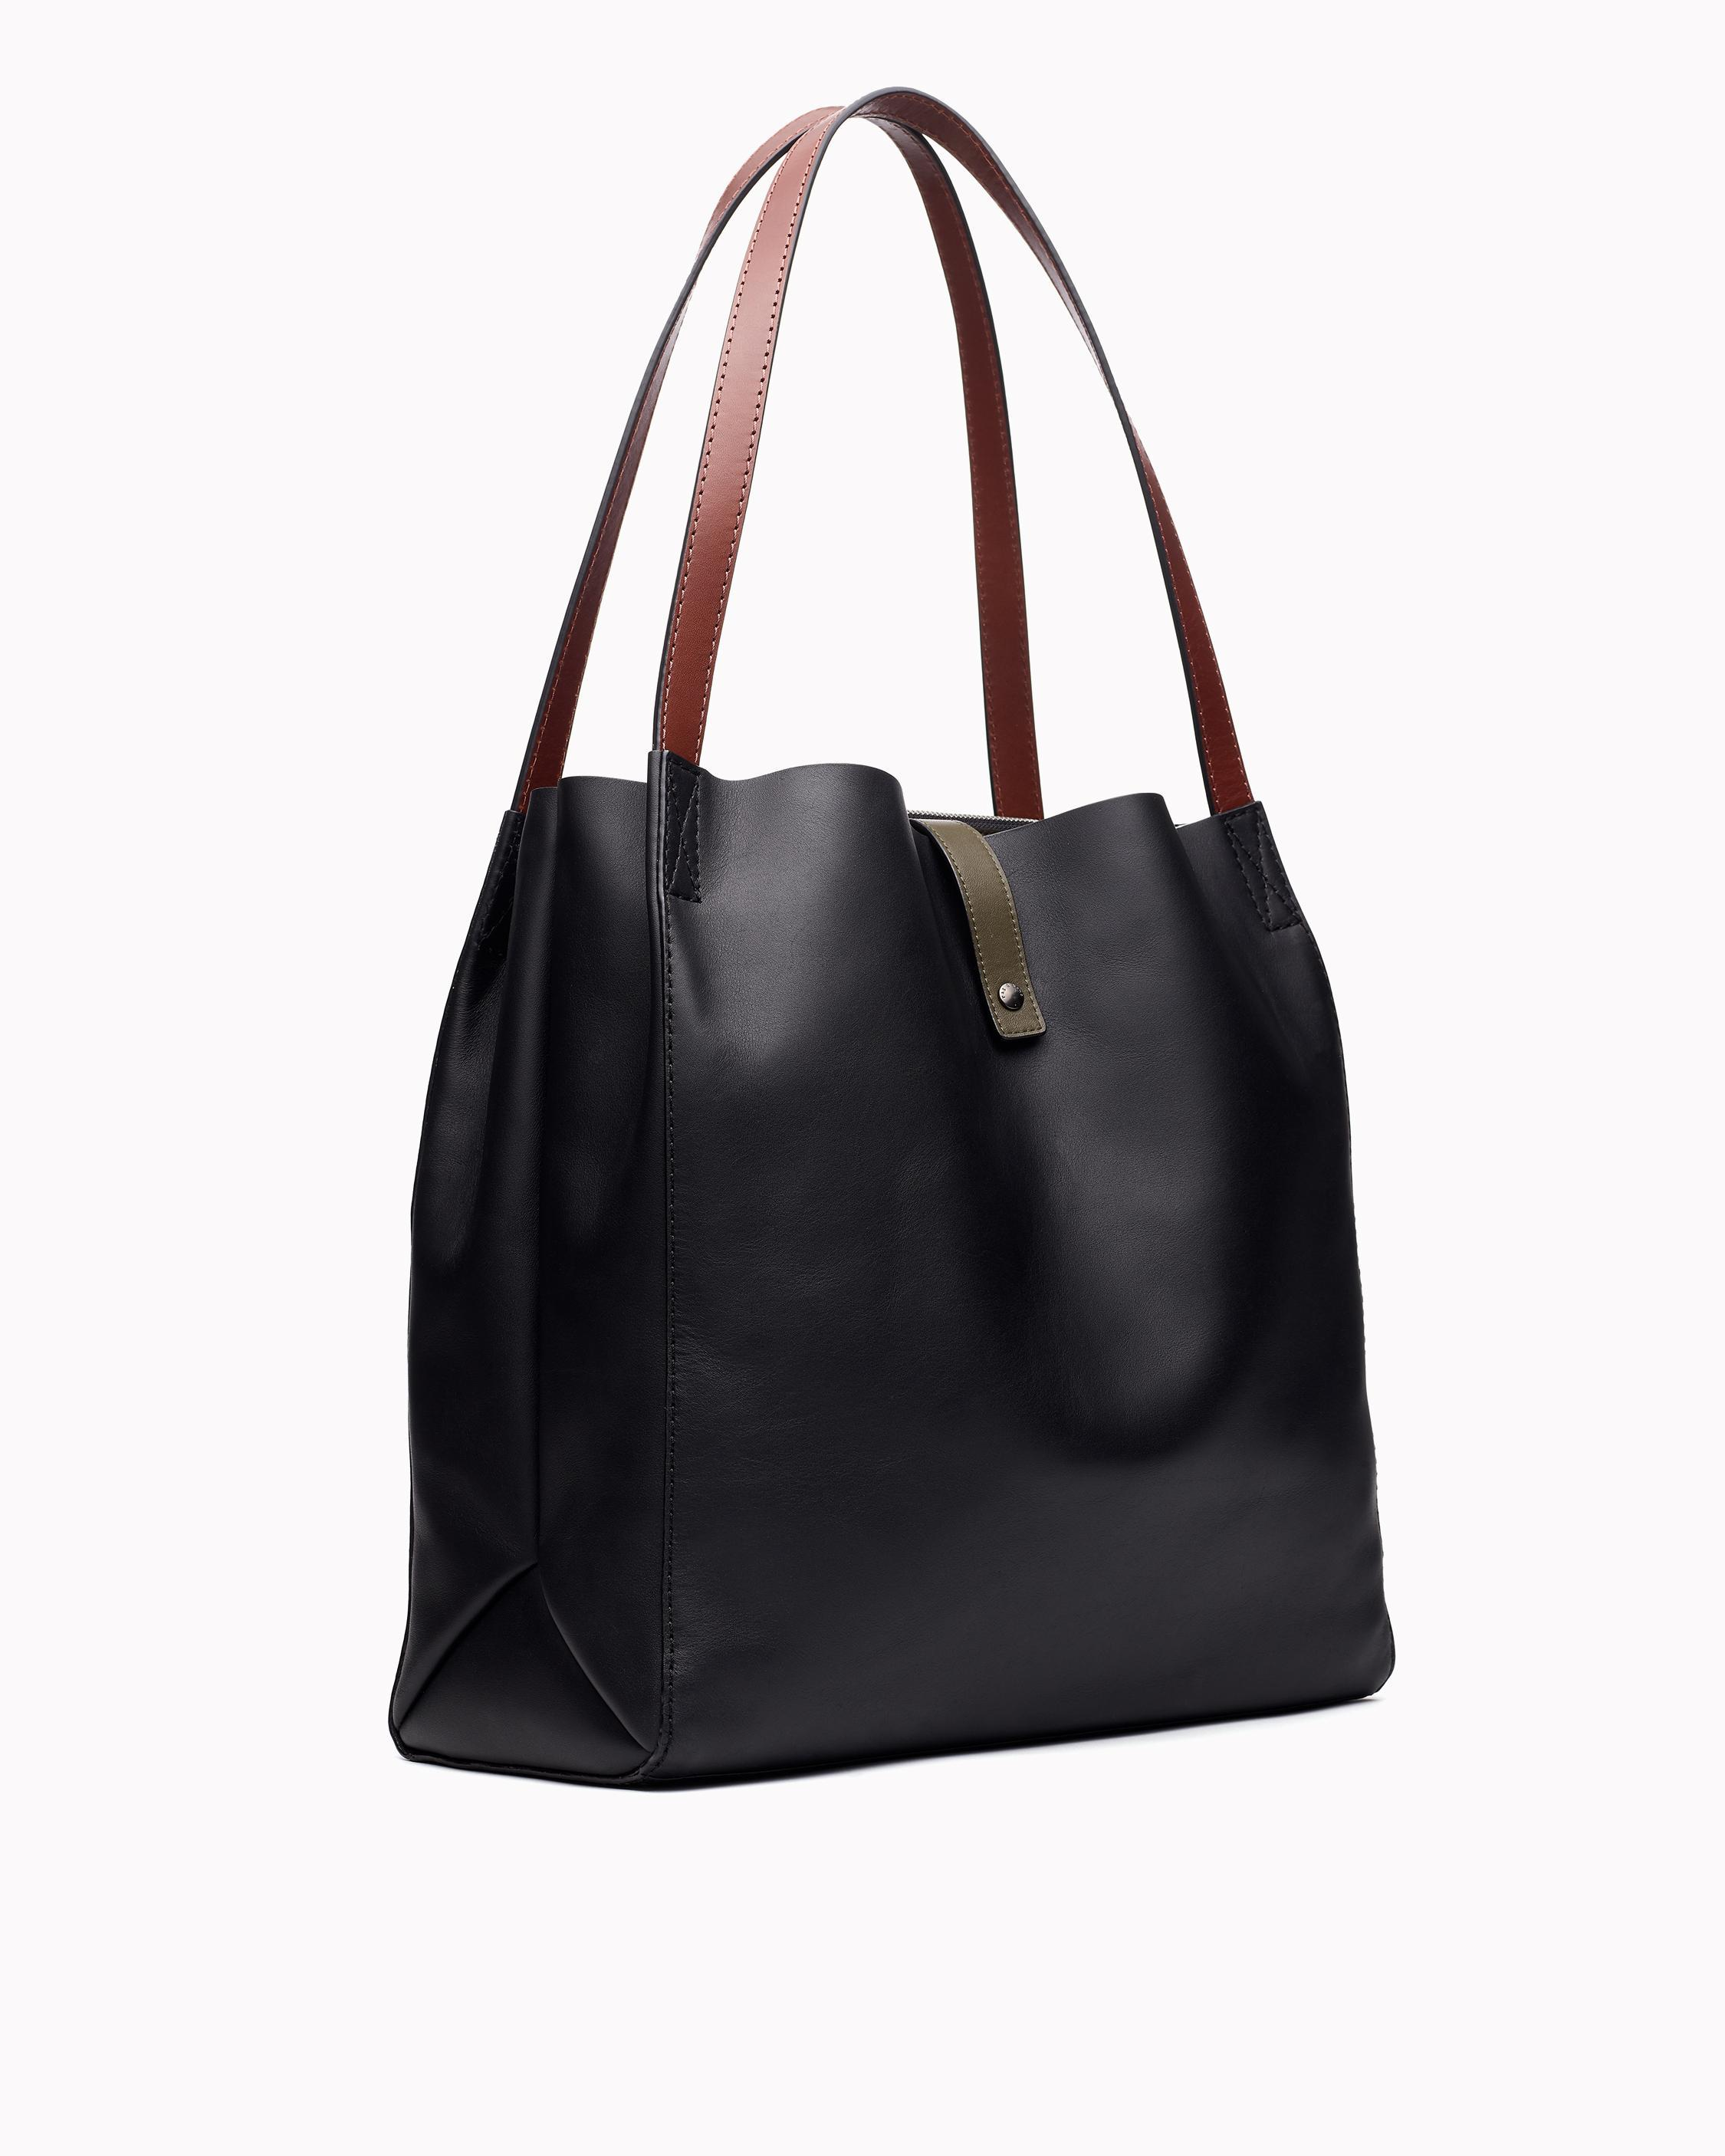 Passenger tote - leather 1